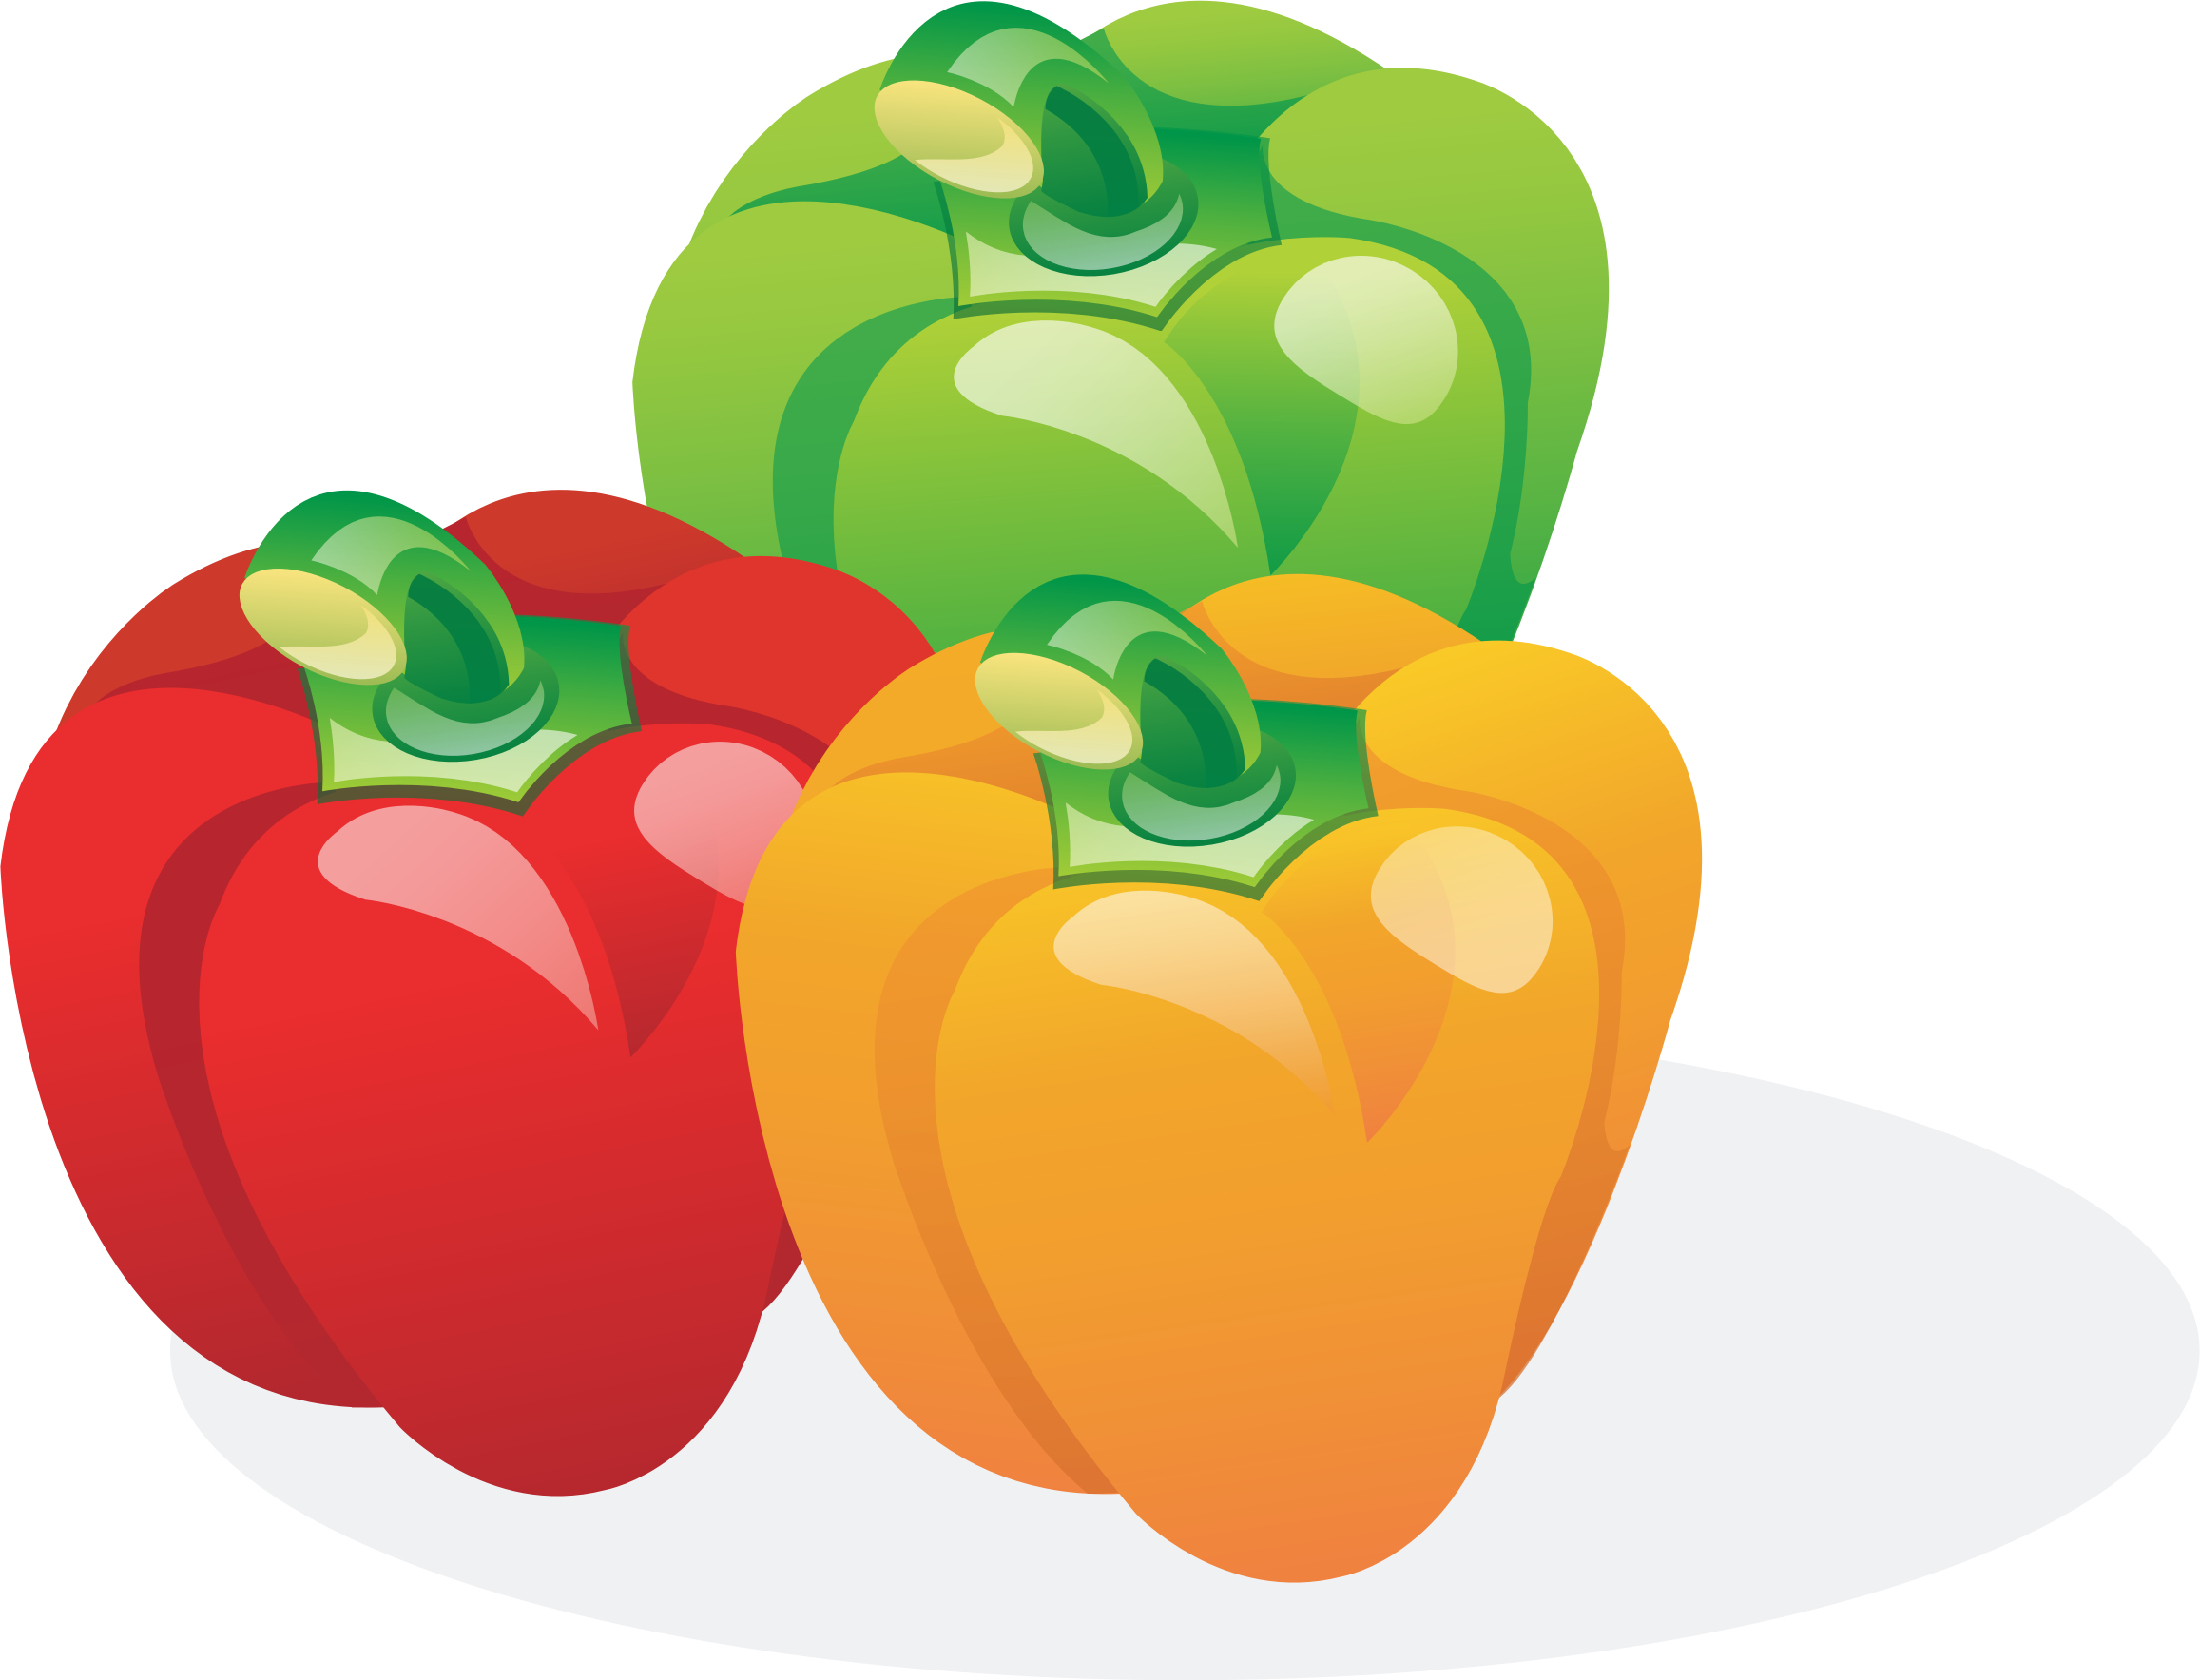 Bell peppers clipart.